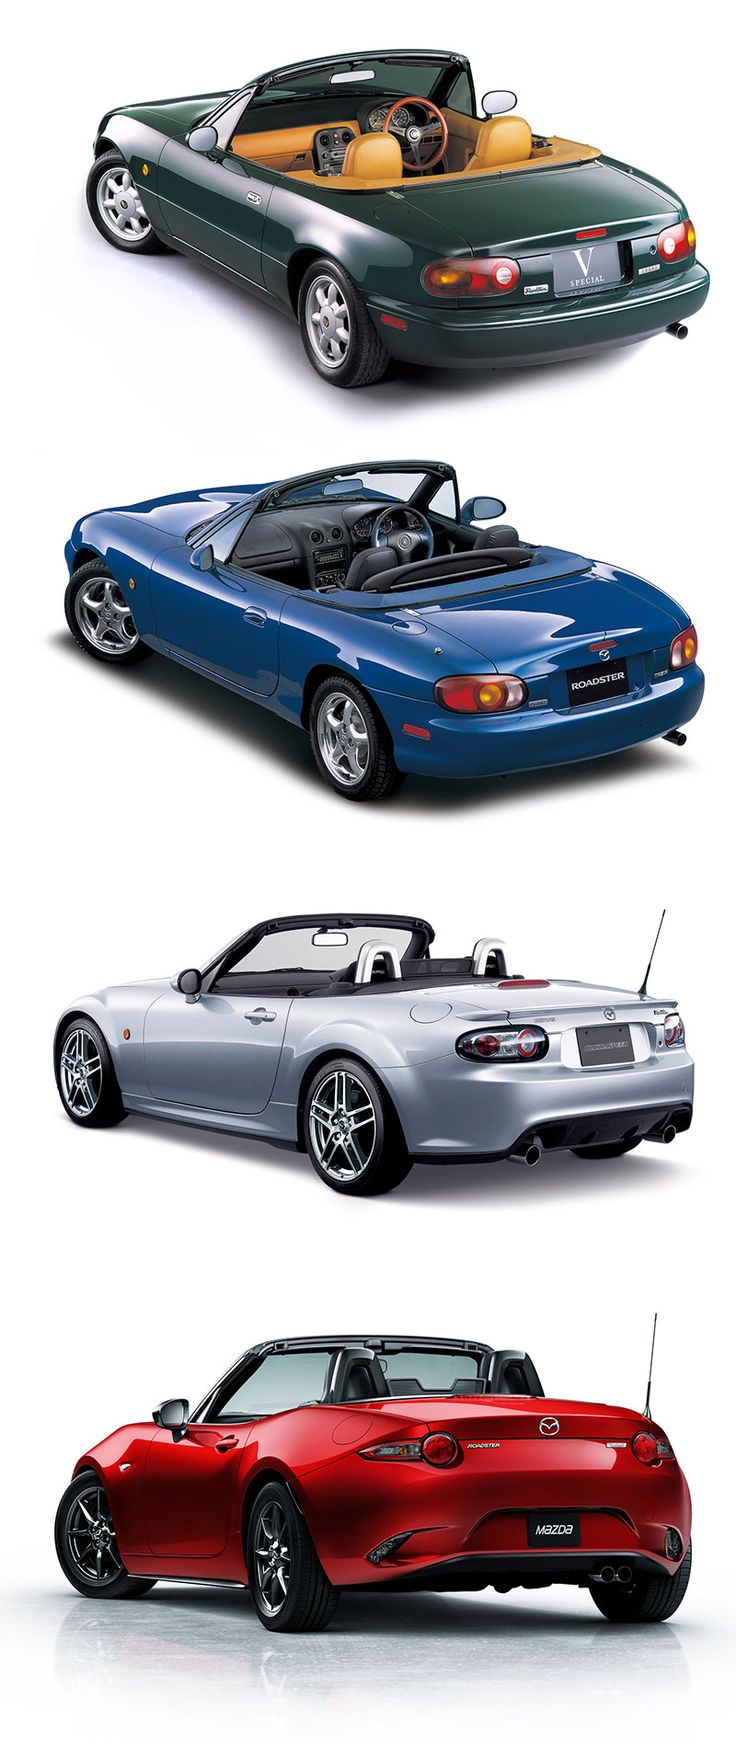 Mazda MX 5 Design Evolution https://www.amazon.co.uk/Baby-Car-Mirror-Shatterproof-Installation/dp/B06XHG6SSY